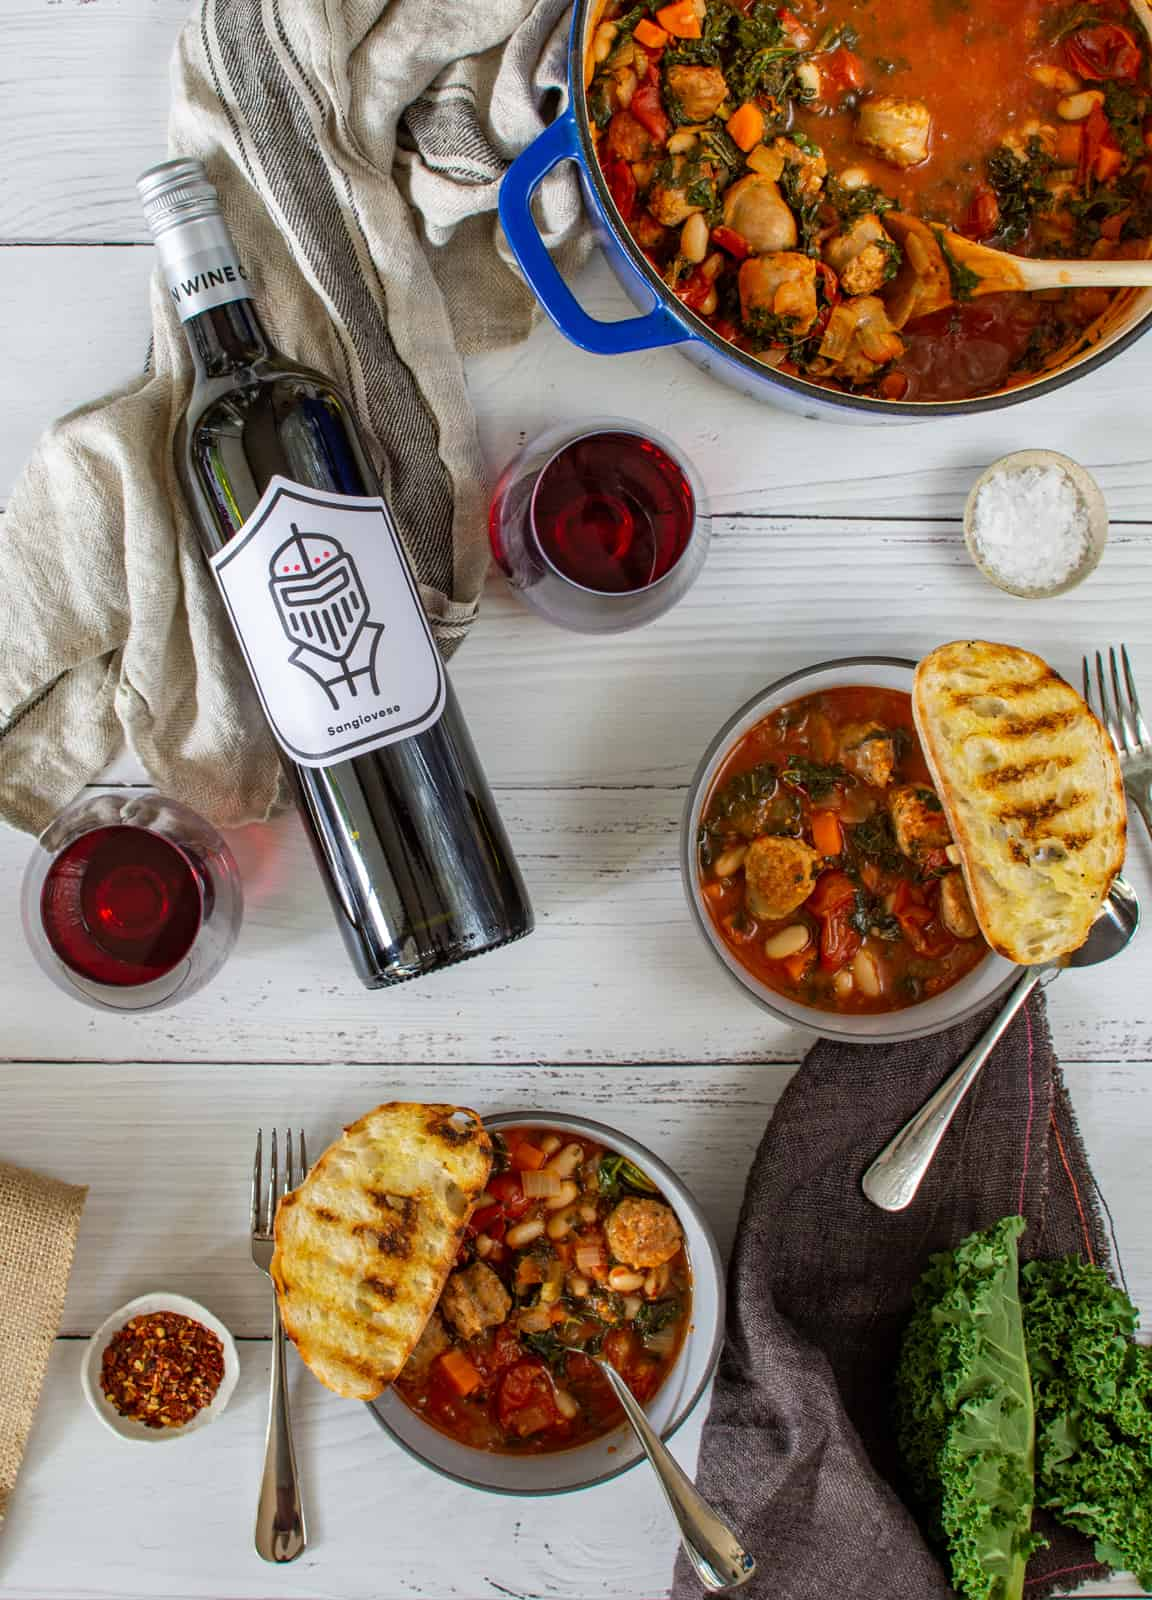 tuscan sausage stew in blue casserole dish, bowls of stew and pawn wine co red wine on a white table